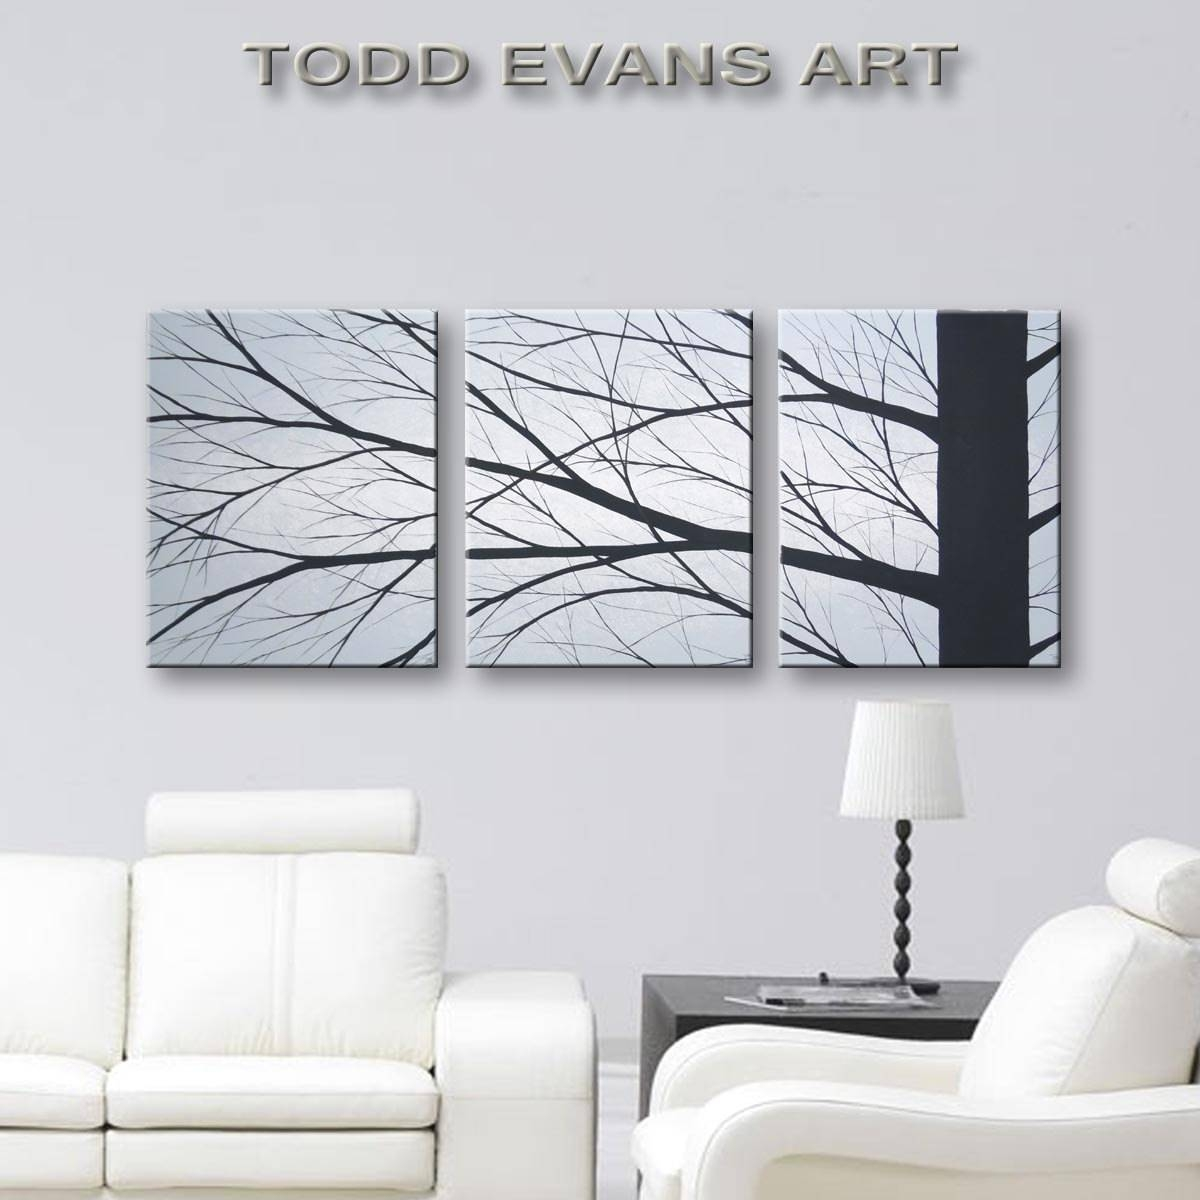 Canvas Art Original Painting Bedroom Wall Art 3 Piece Wall Within Best And Newest 7 Piece Canvas Wall Art (View 8 of 20)